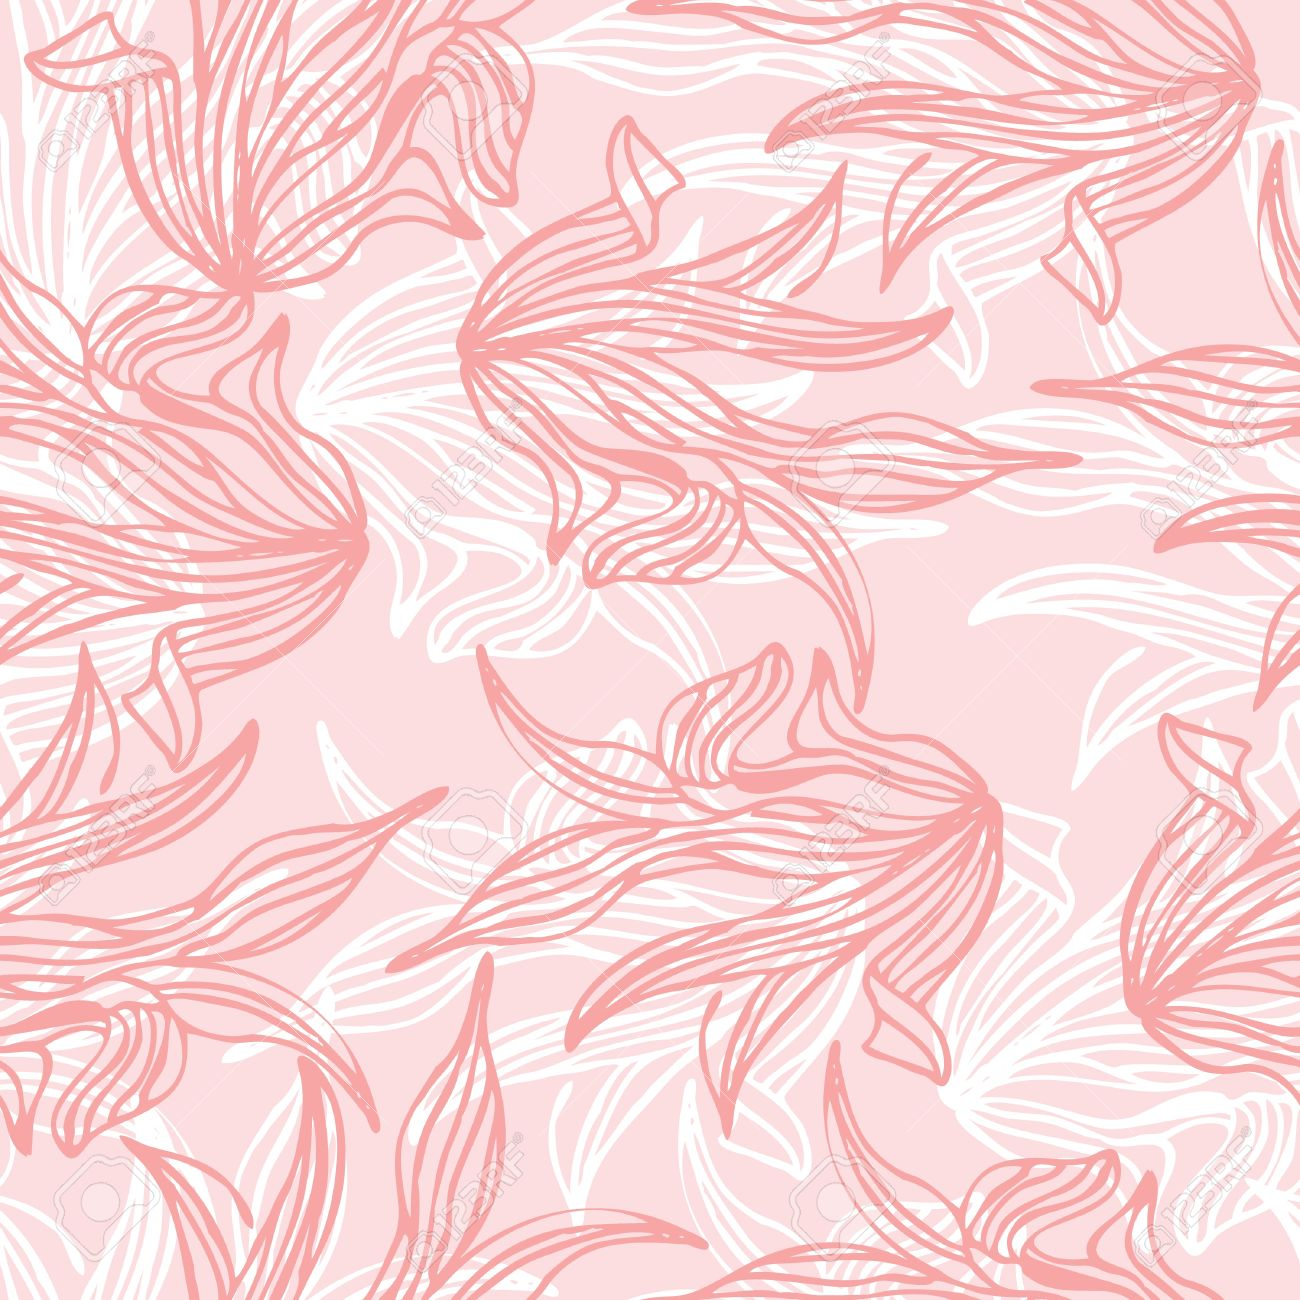 Seamless pattern of pink leaf illustration background Stock Vector - 18706191